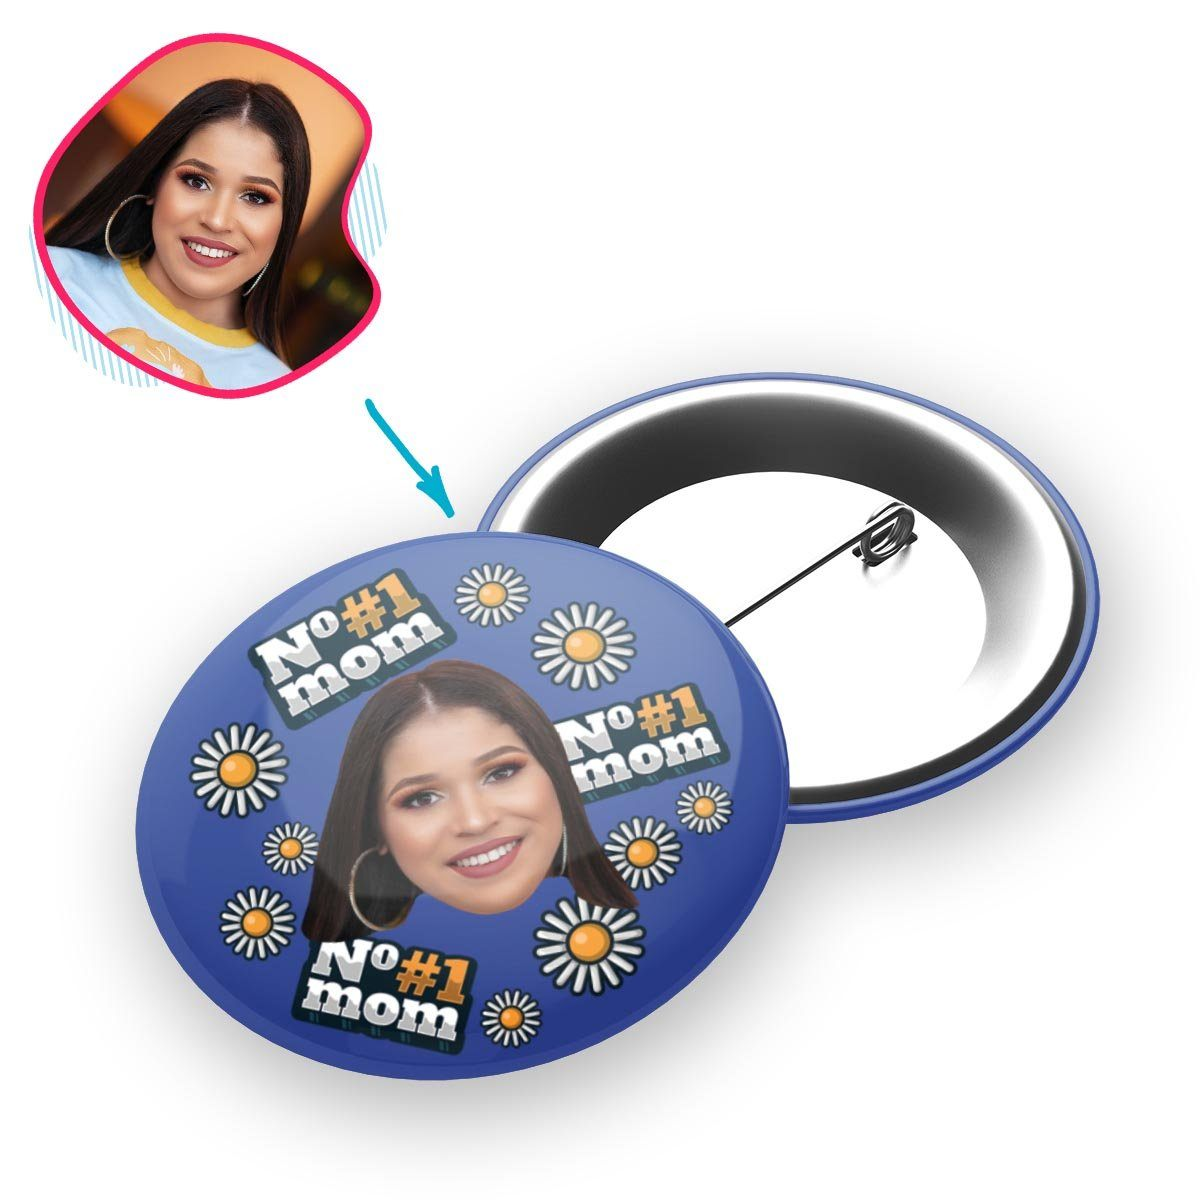 darkblue #1 Mom pin personalized with photo of face printed on it